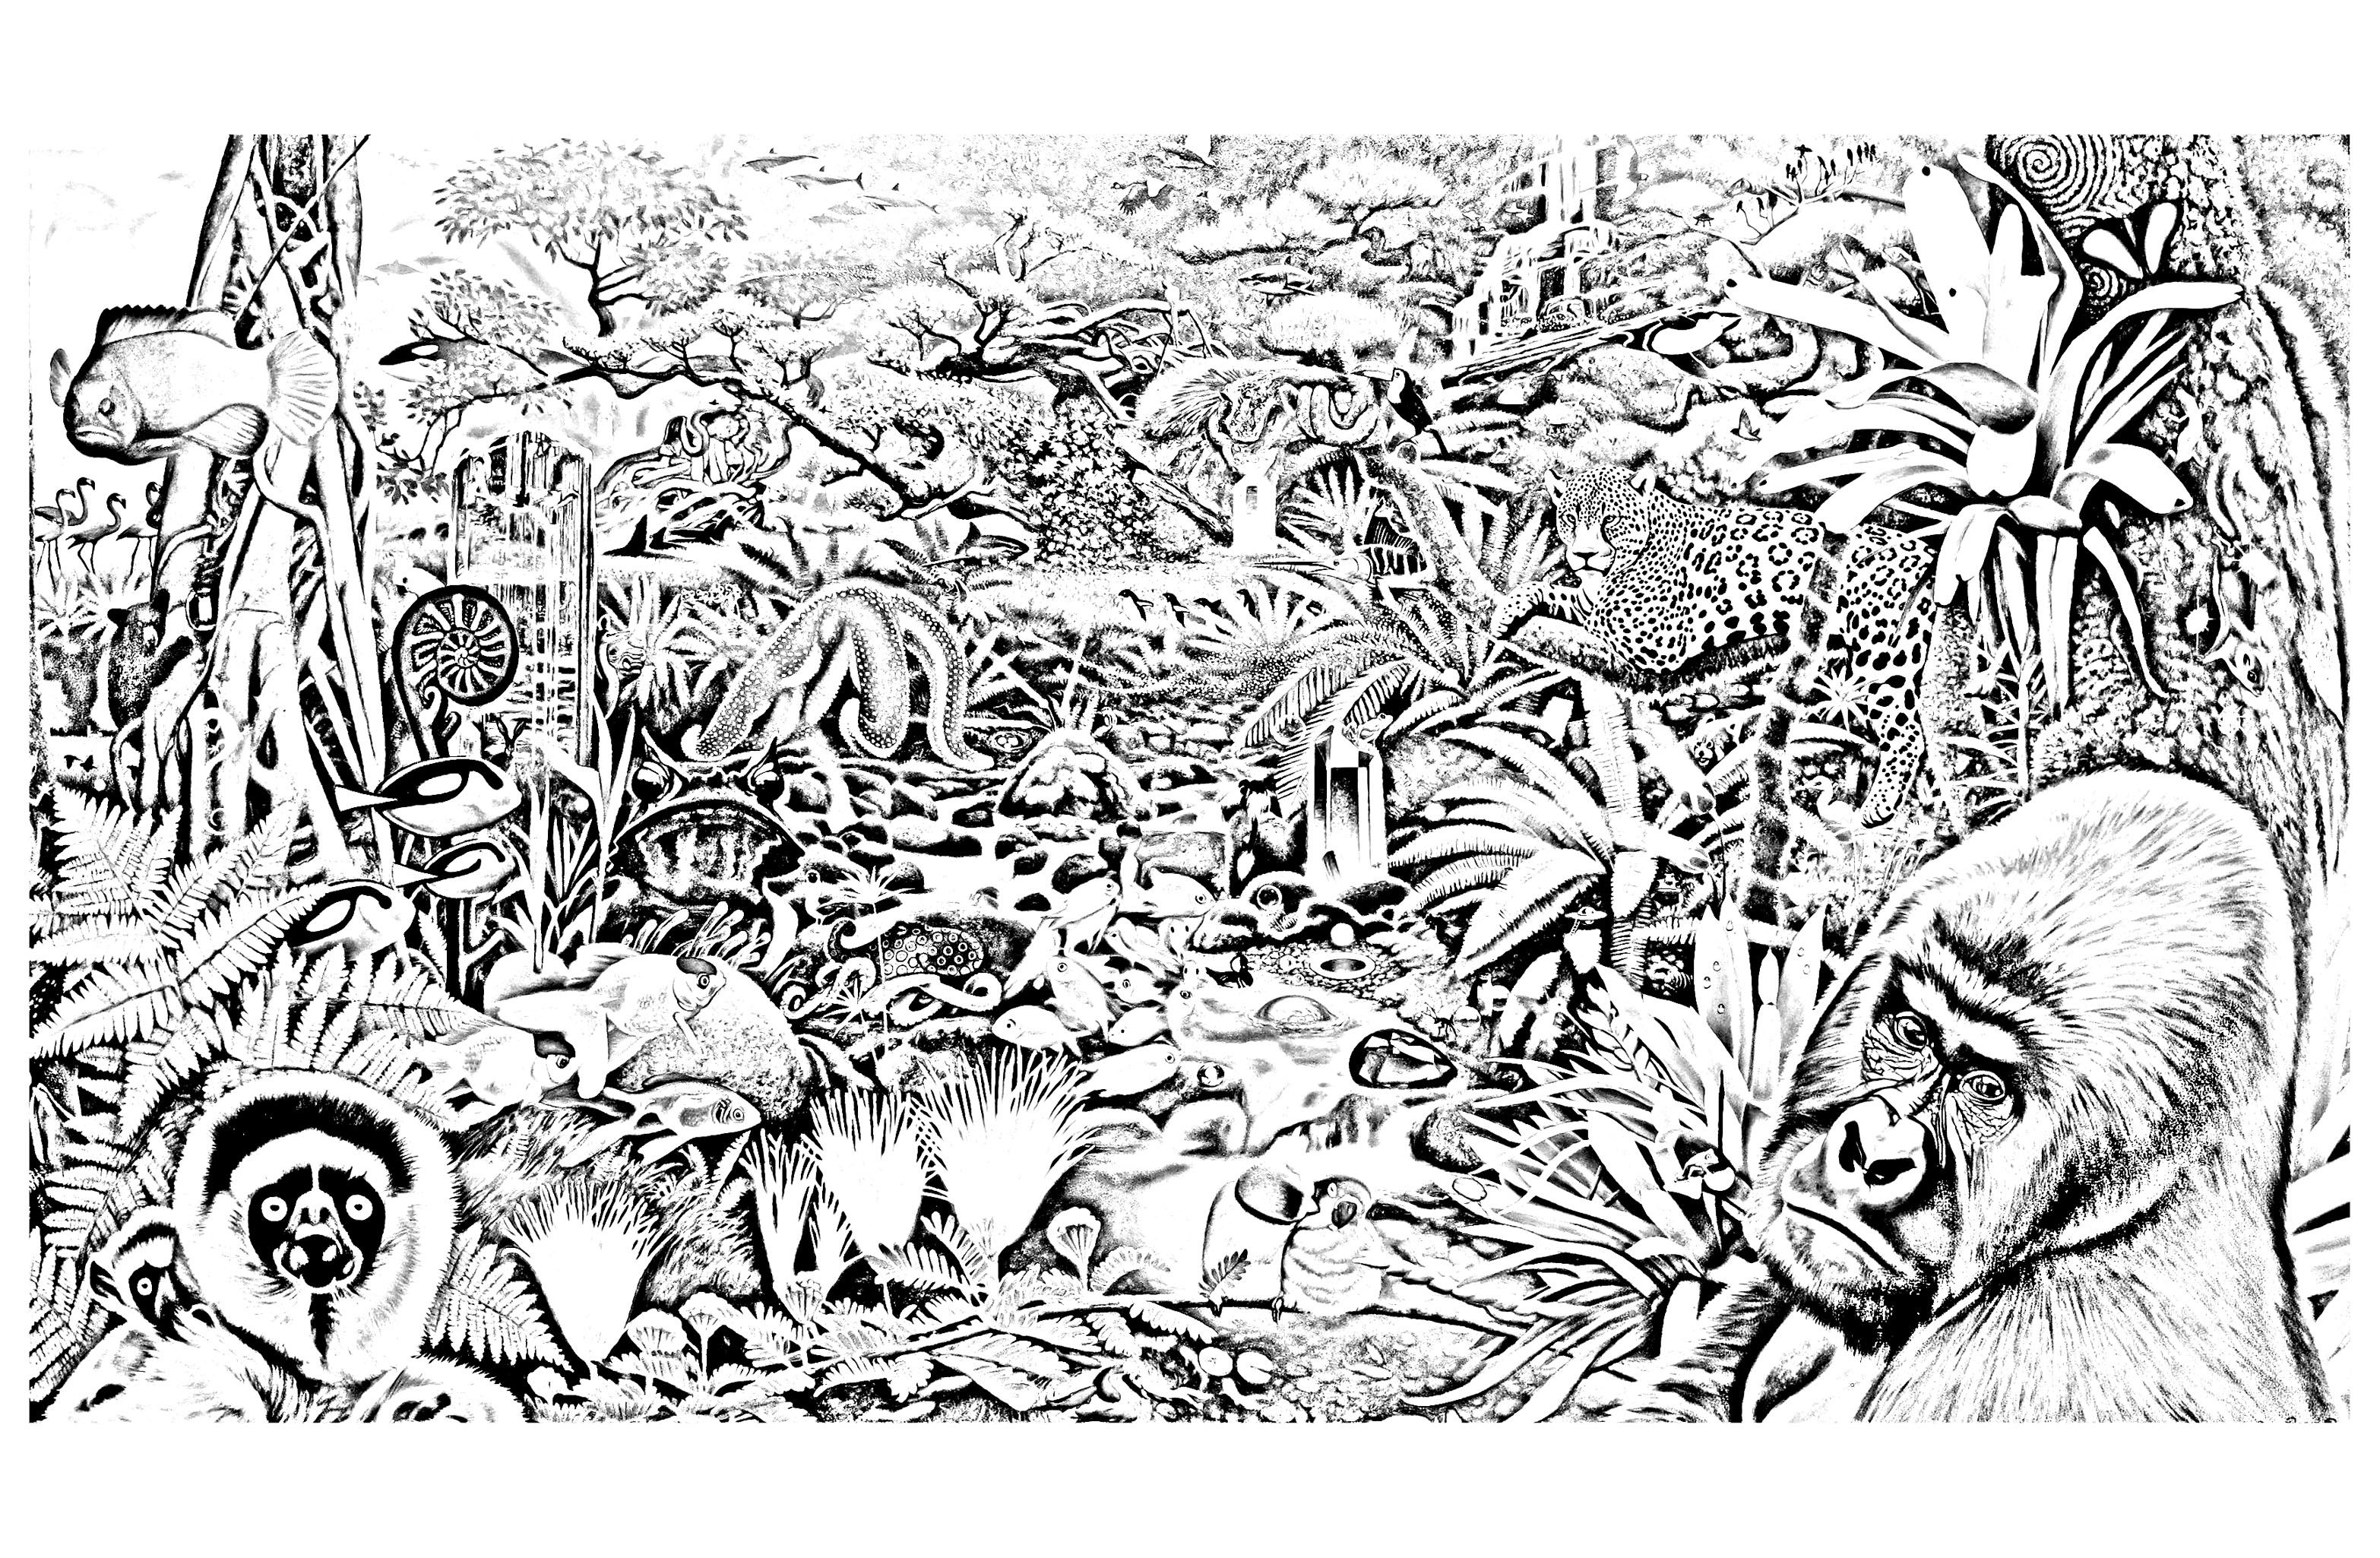 Free Coloring Page Coloring Jungle Forest Animals Various Animals In A Forest To Print An Animal Coloring Pages Jungle Coloring Pages Forest Coloring Pages